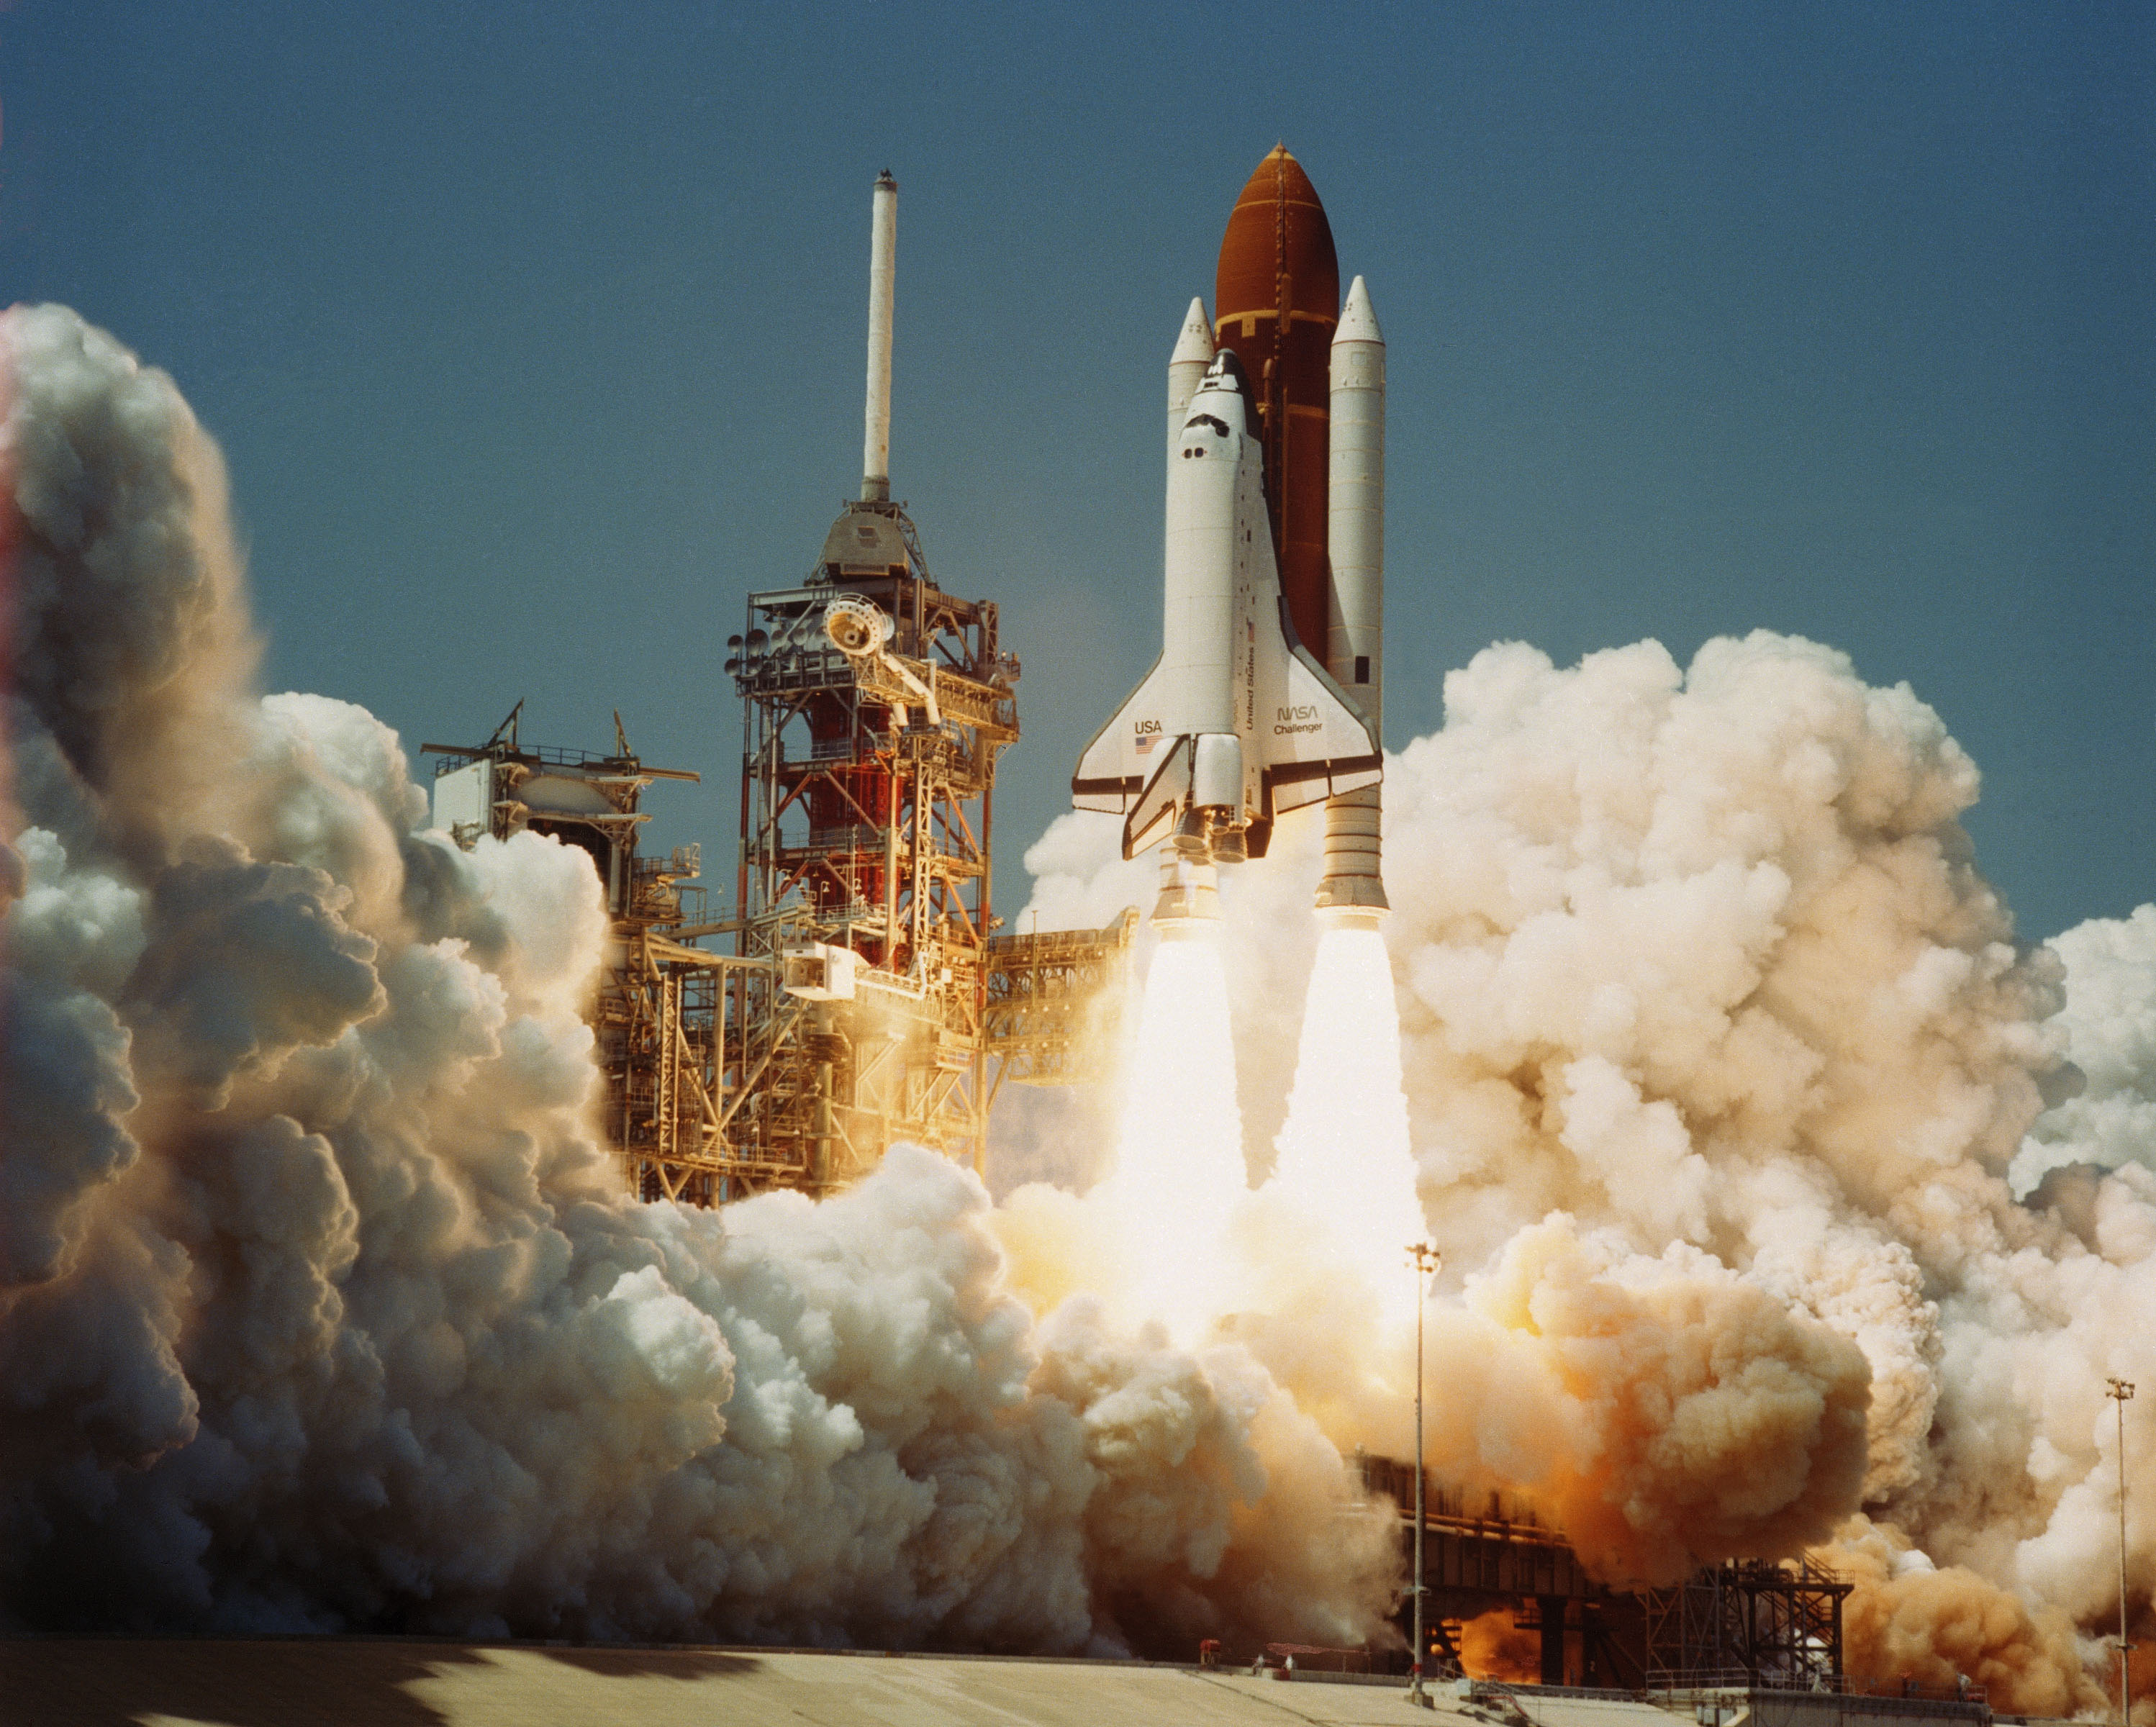 1987 space shuttle launch - photo #21